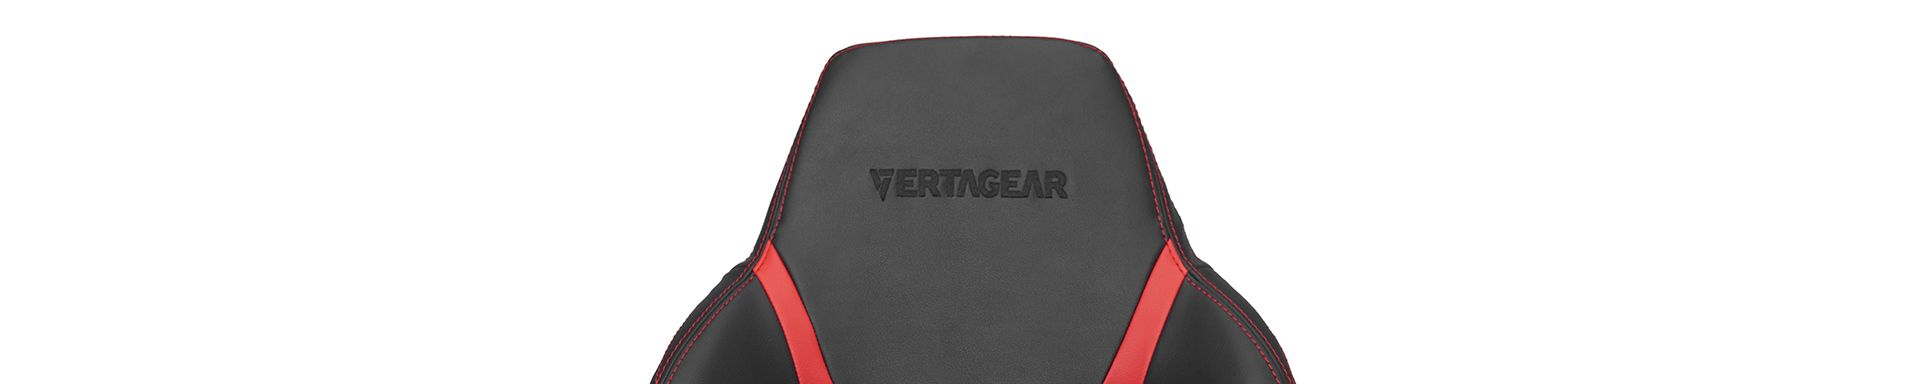 Wondrous Vertagear Pl6000 Gaming Chair Black Red Edition Nordic Caraccident5 Cool Chair Designs And Ideas Caraccident5Info